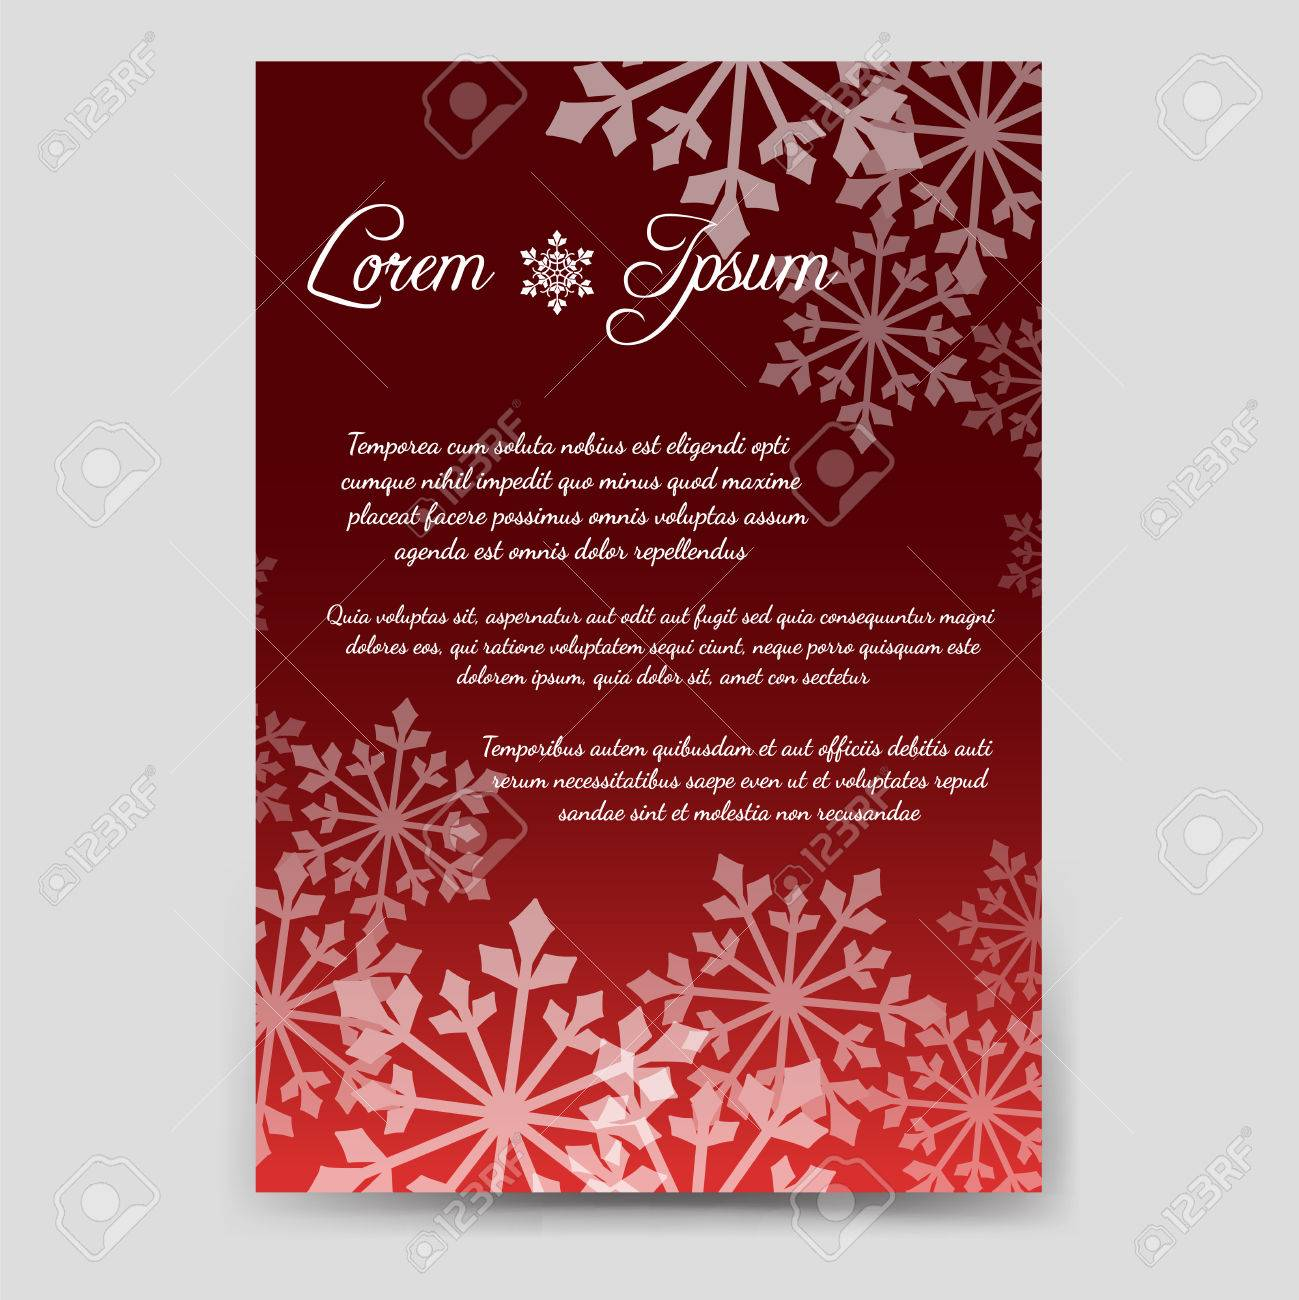 Winter Brochure Flyer Template Design In A6 Size With Snowflakes ...